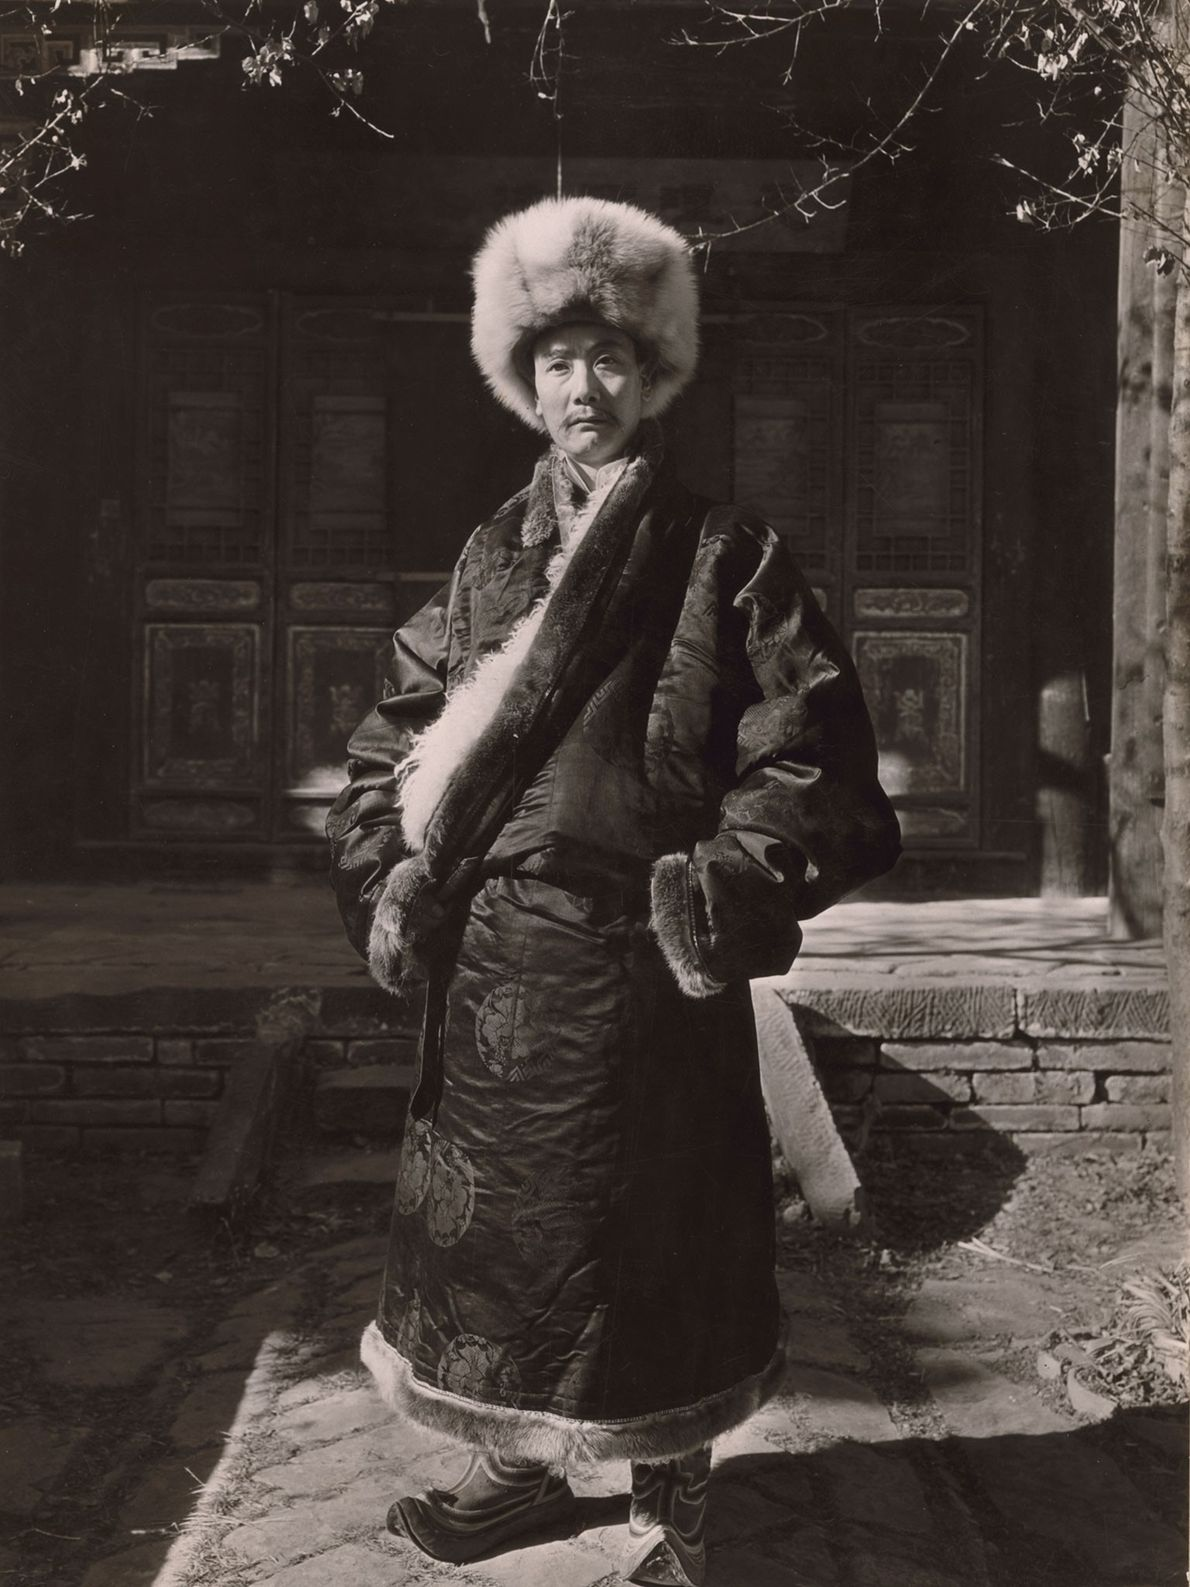 A Choni prince wears traditional attire in China.